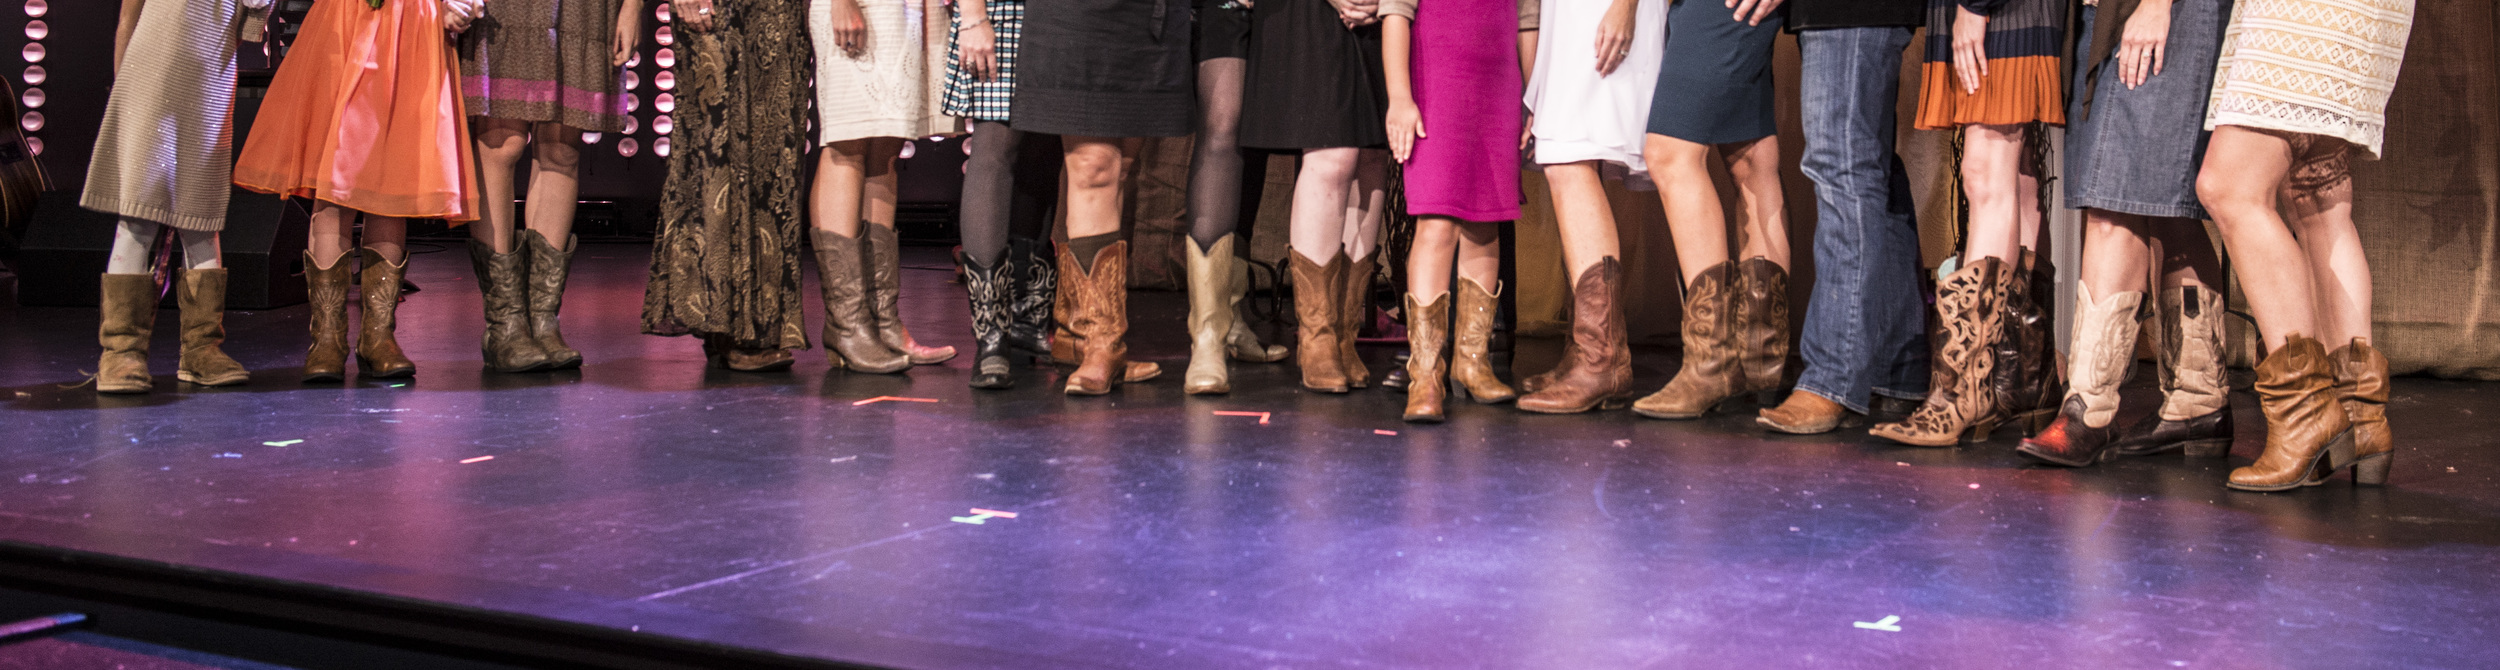 All the guests who sported their favorite boots!